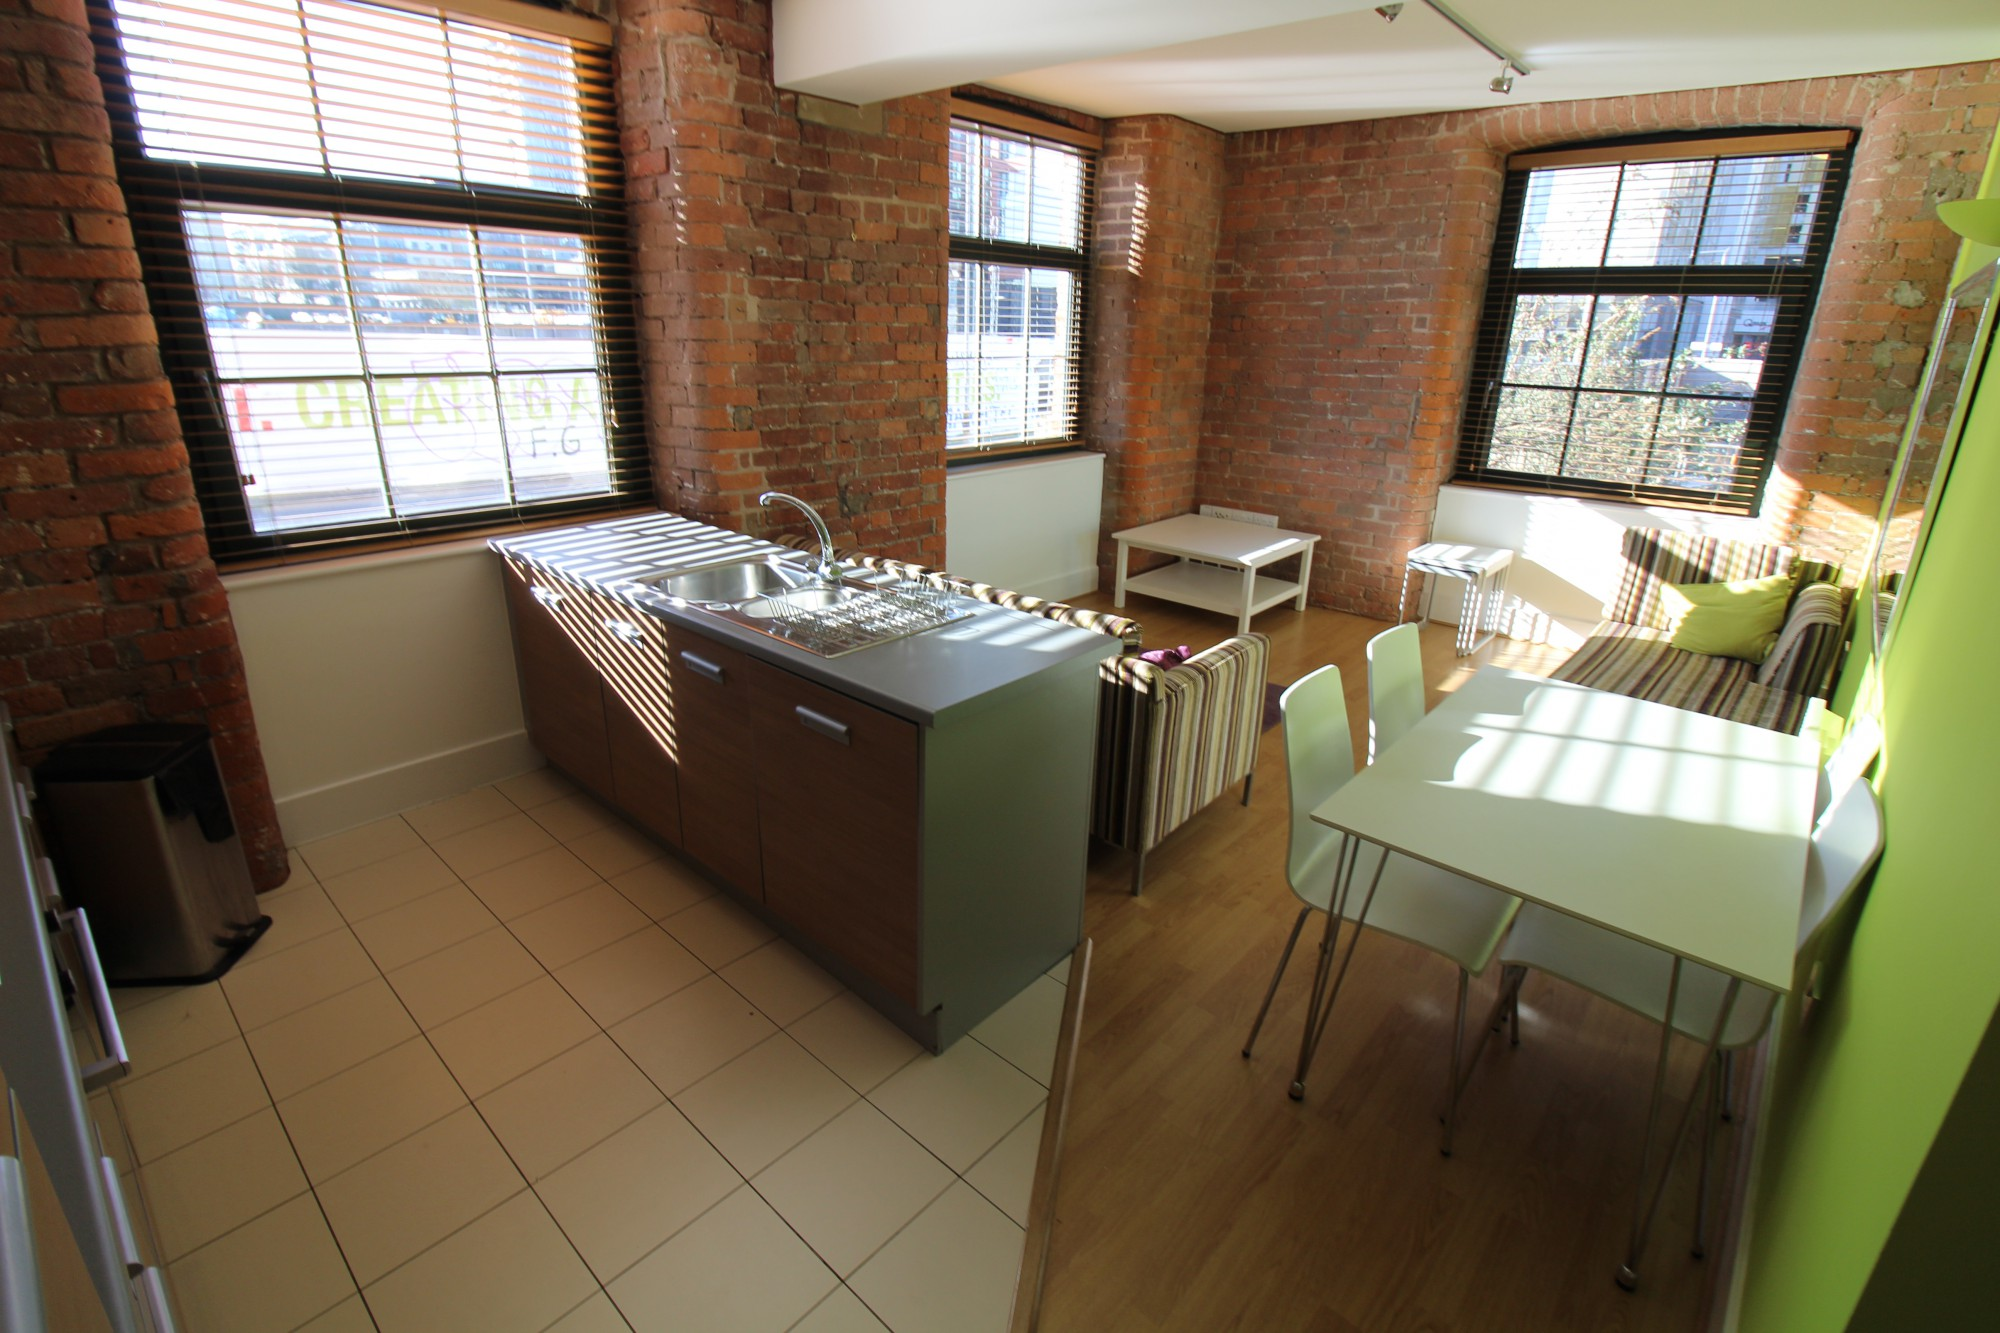 2 Bed Apartment Manchester 2 Bed Apartment Cambridge Street Manchester M1 5gh The Square